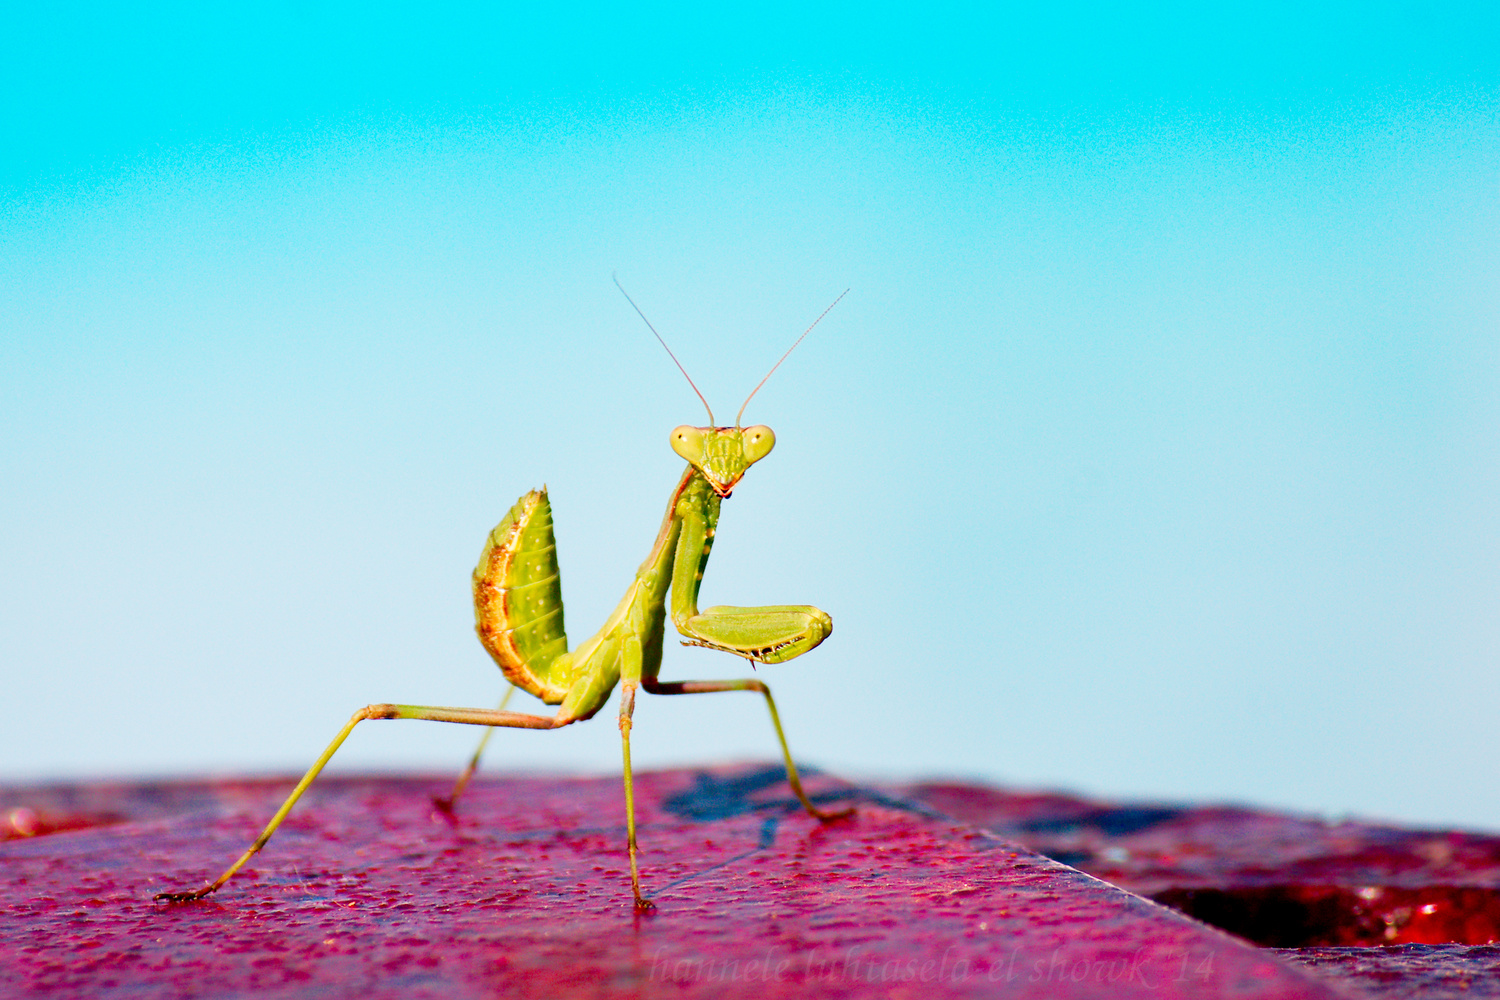 Mantis by swimming pool. Insect Photography Tips